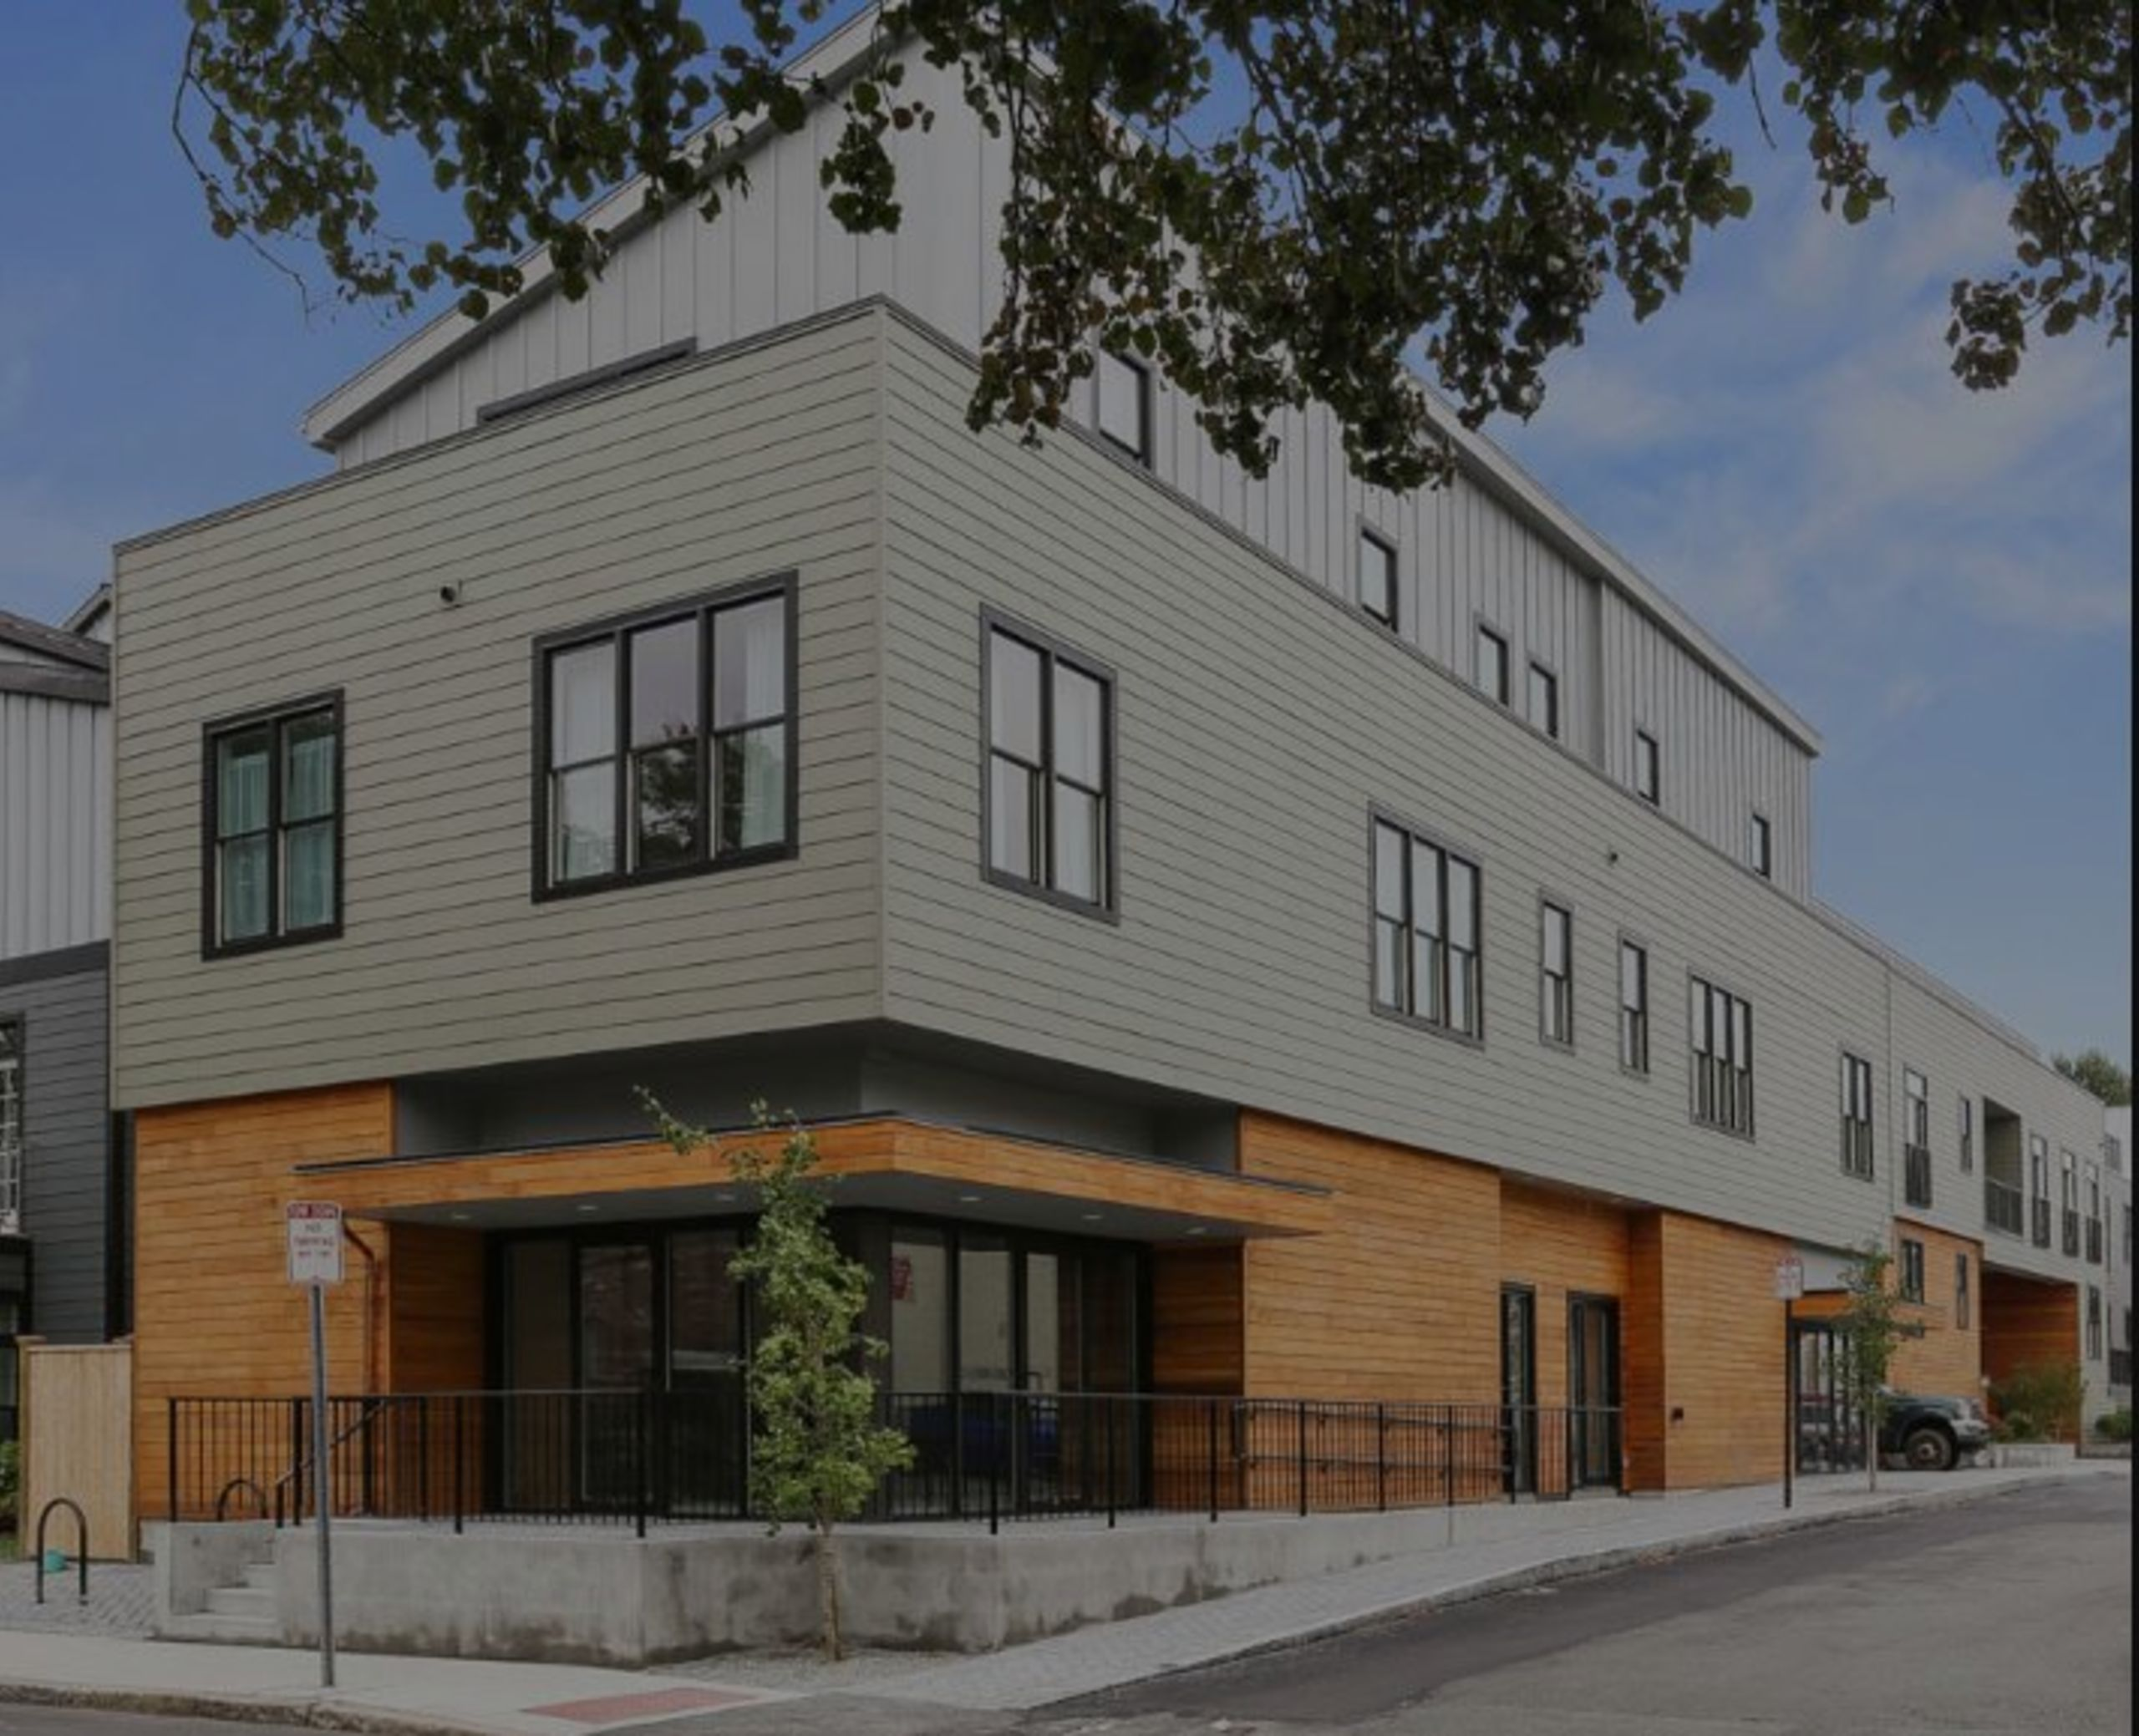 Do you qualify for these affordable units in Somerville?